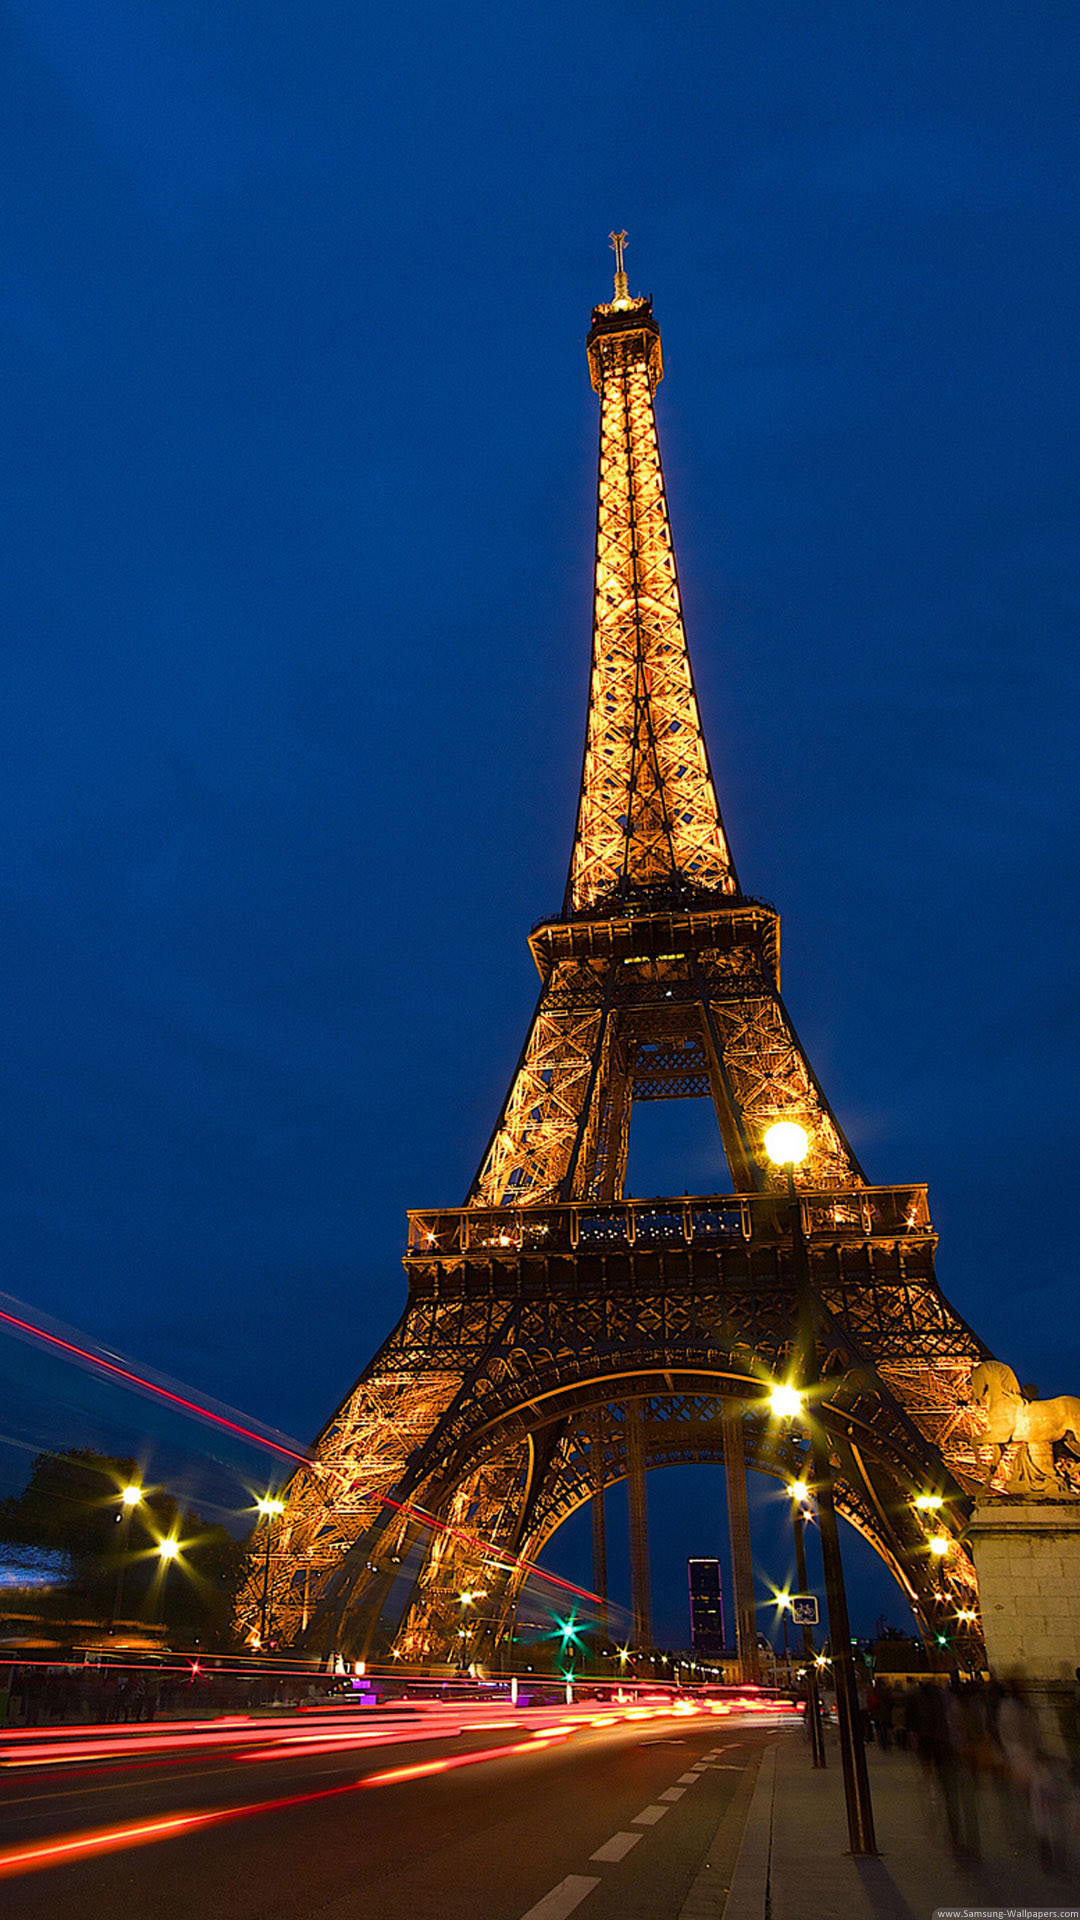 1080x1920 Eiffel Tower Lockscreen Night Traffic Lights iPhone 6 Plus HD Wallpaper ...